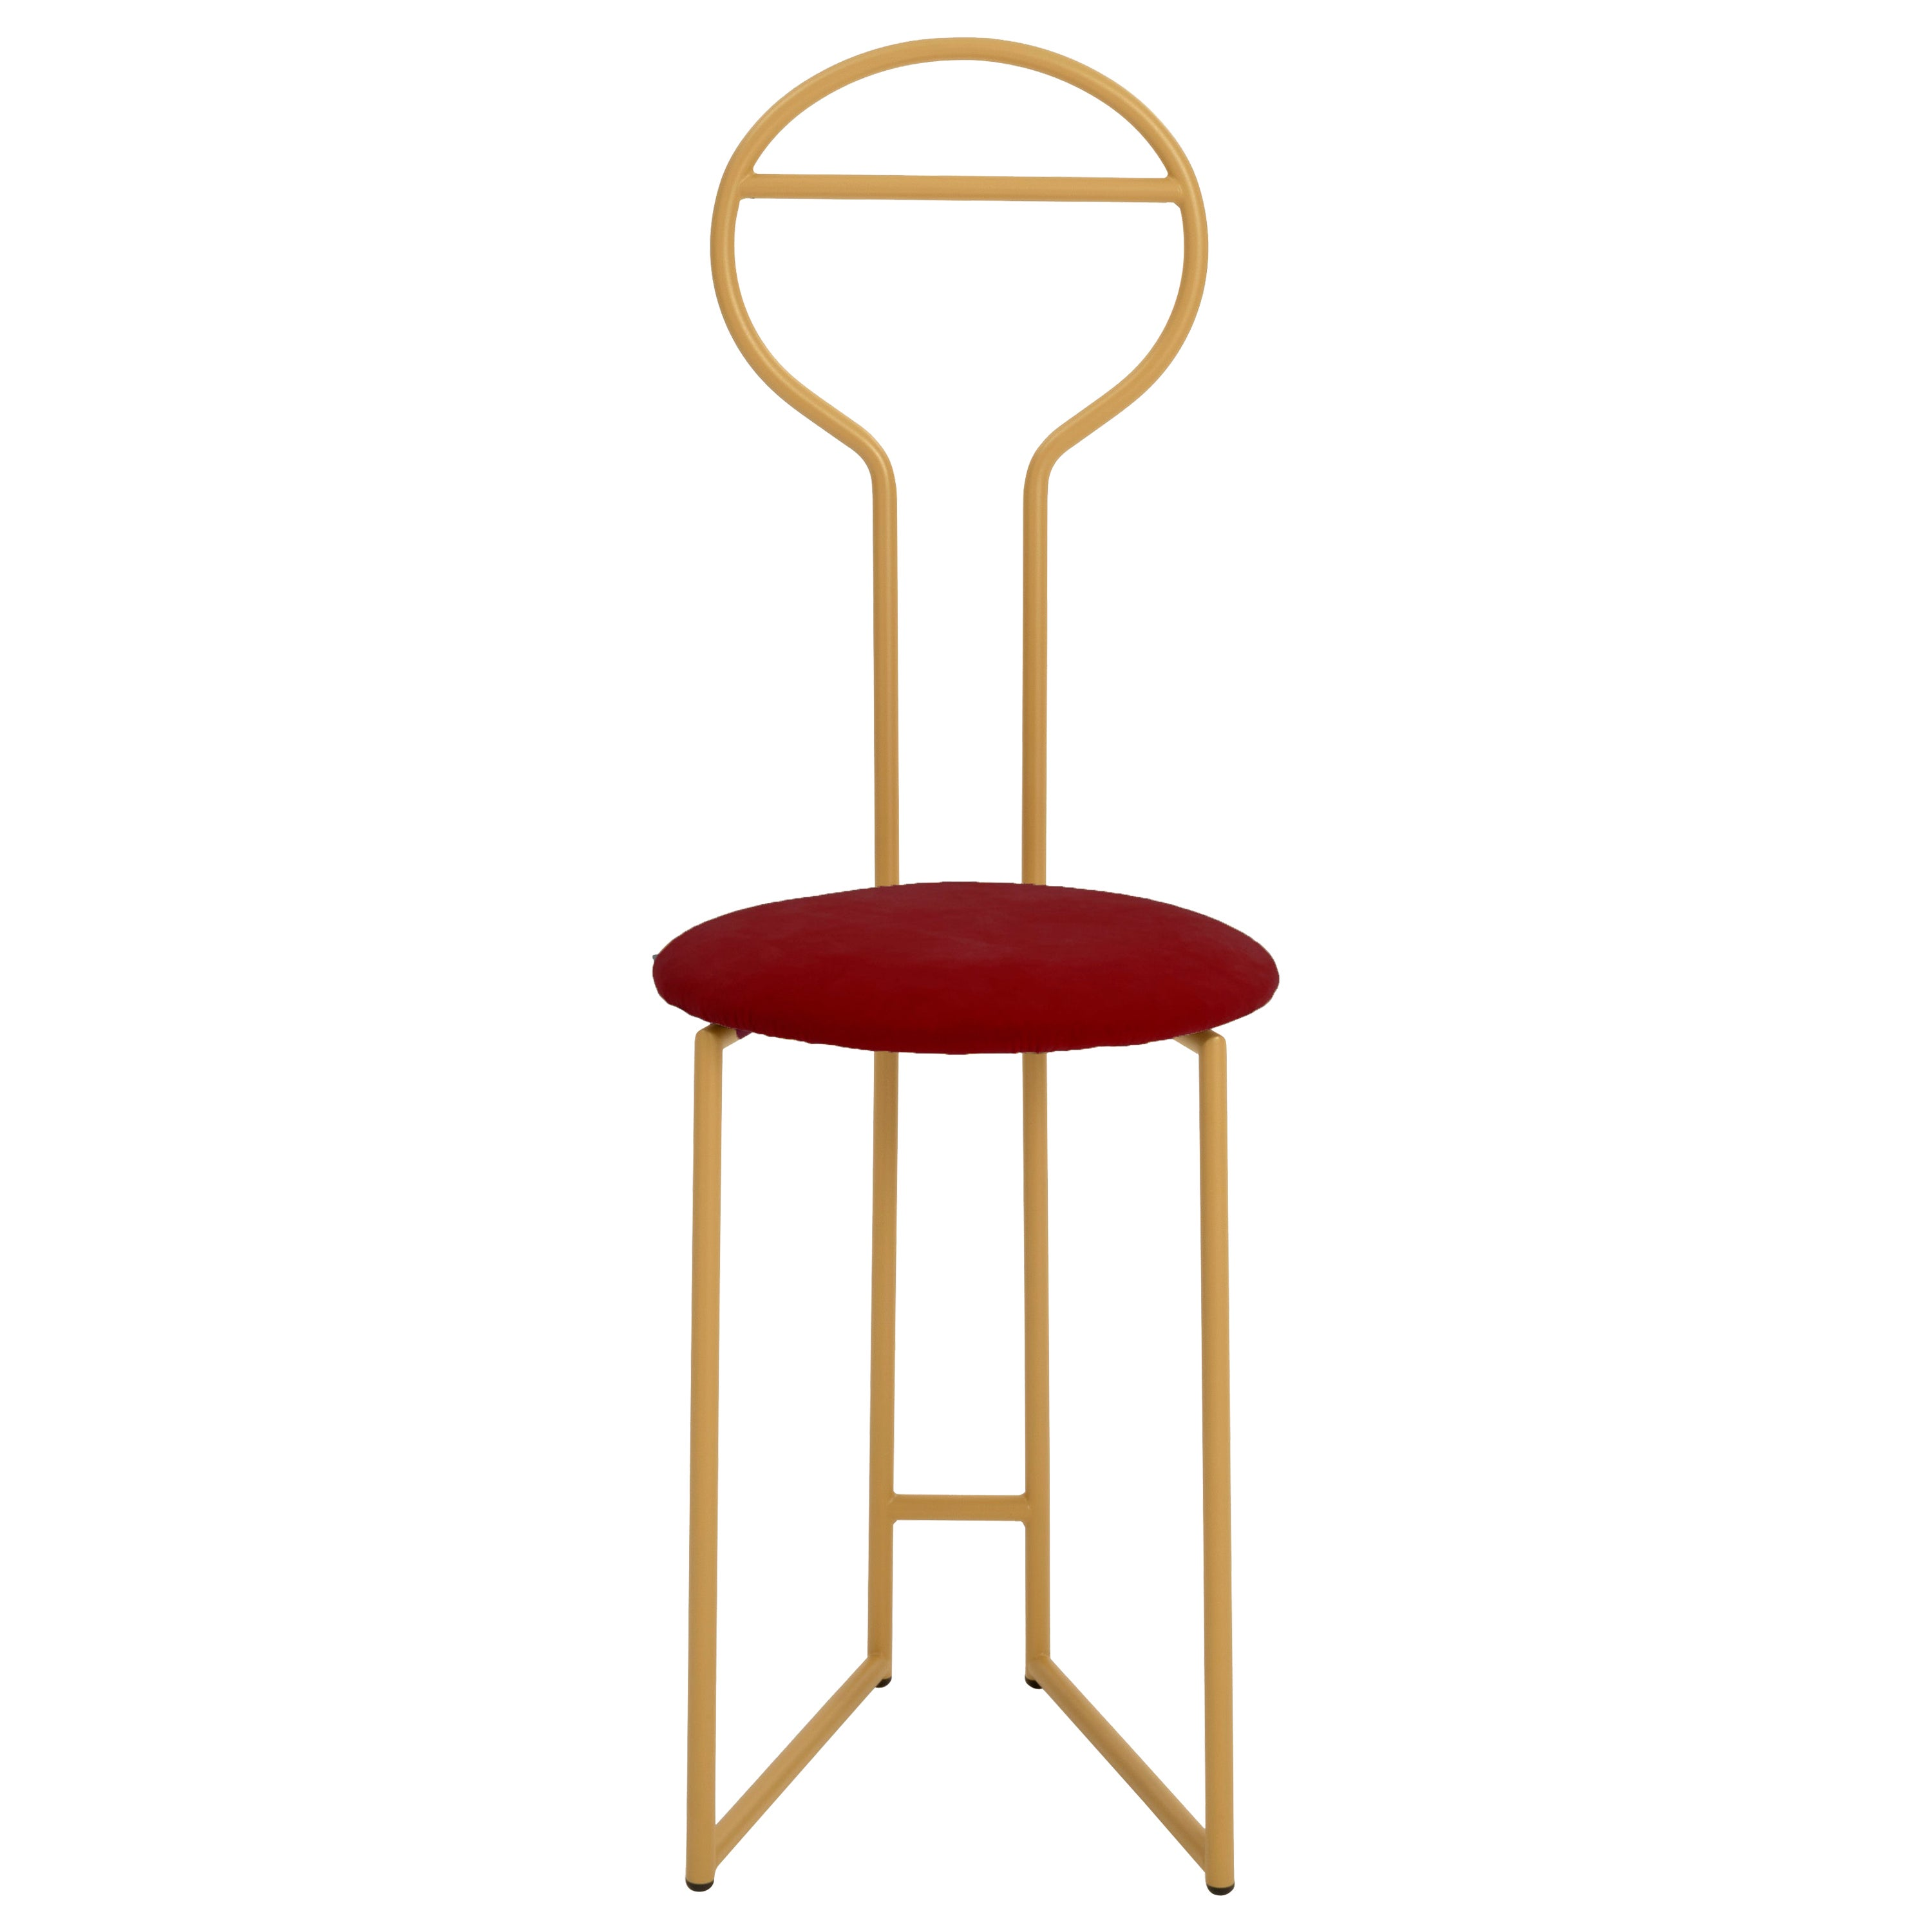 Joly Chairdrobe, High Back, Gold Structure and Red Fine Italian Velvet